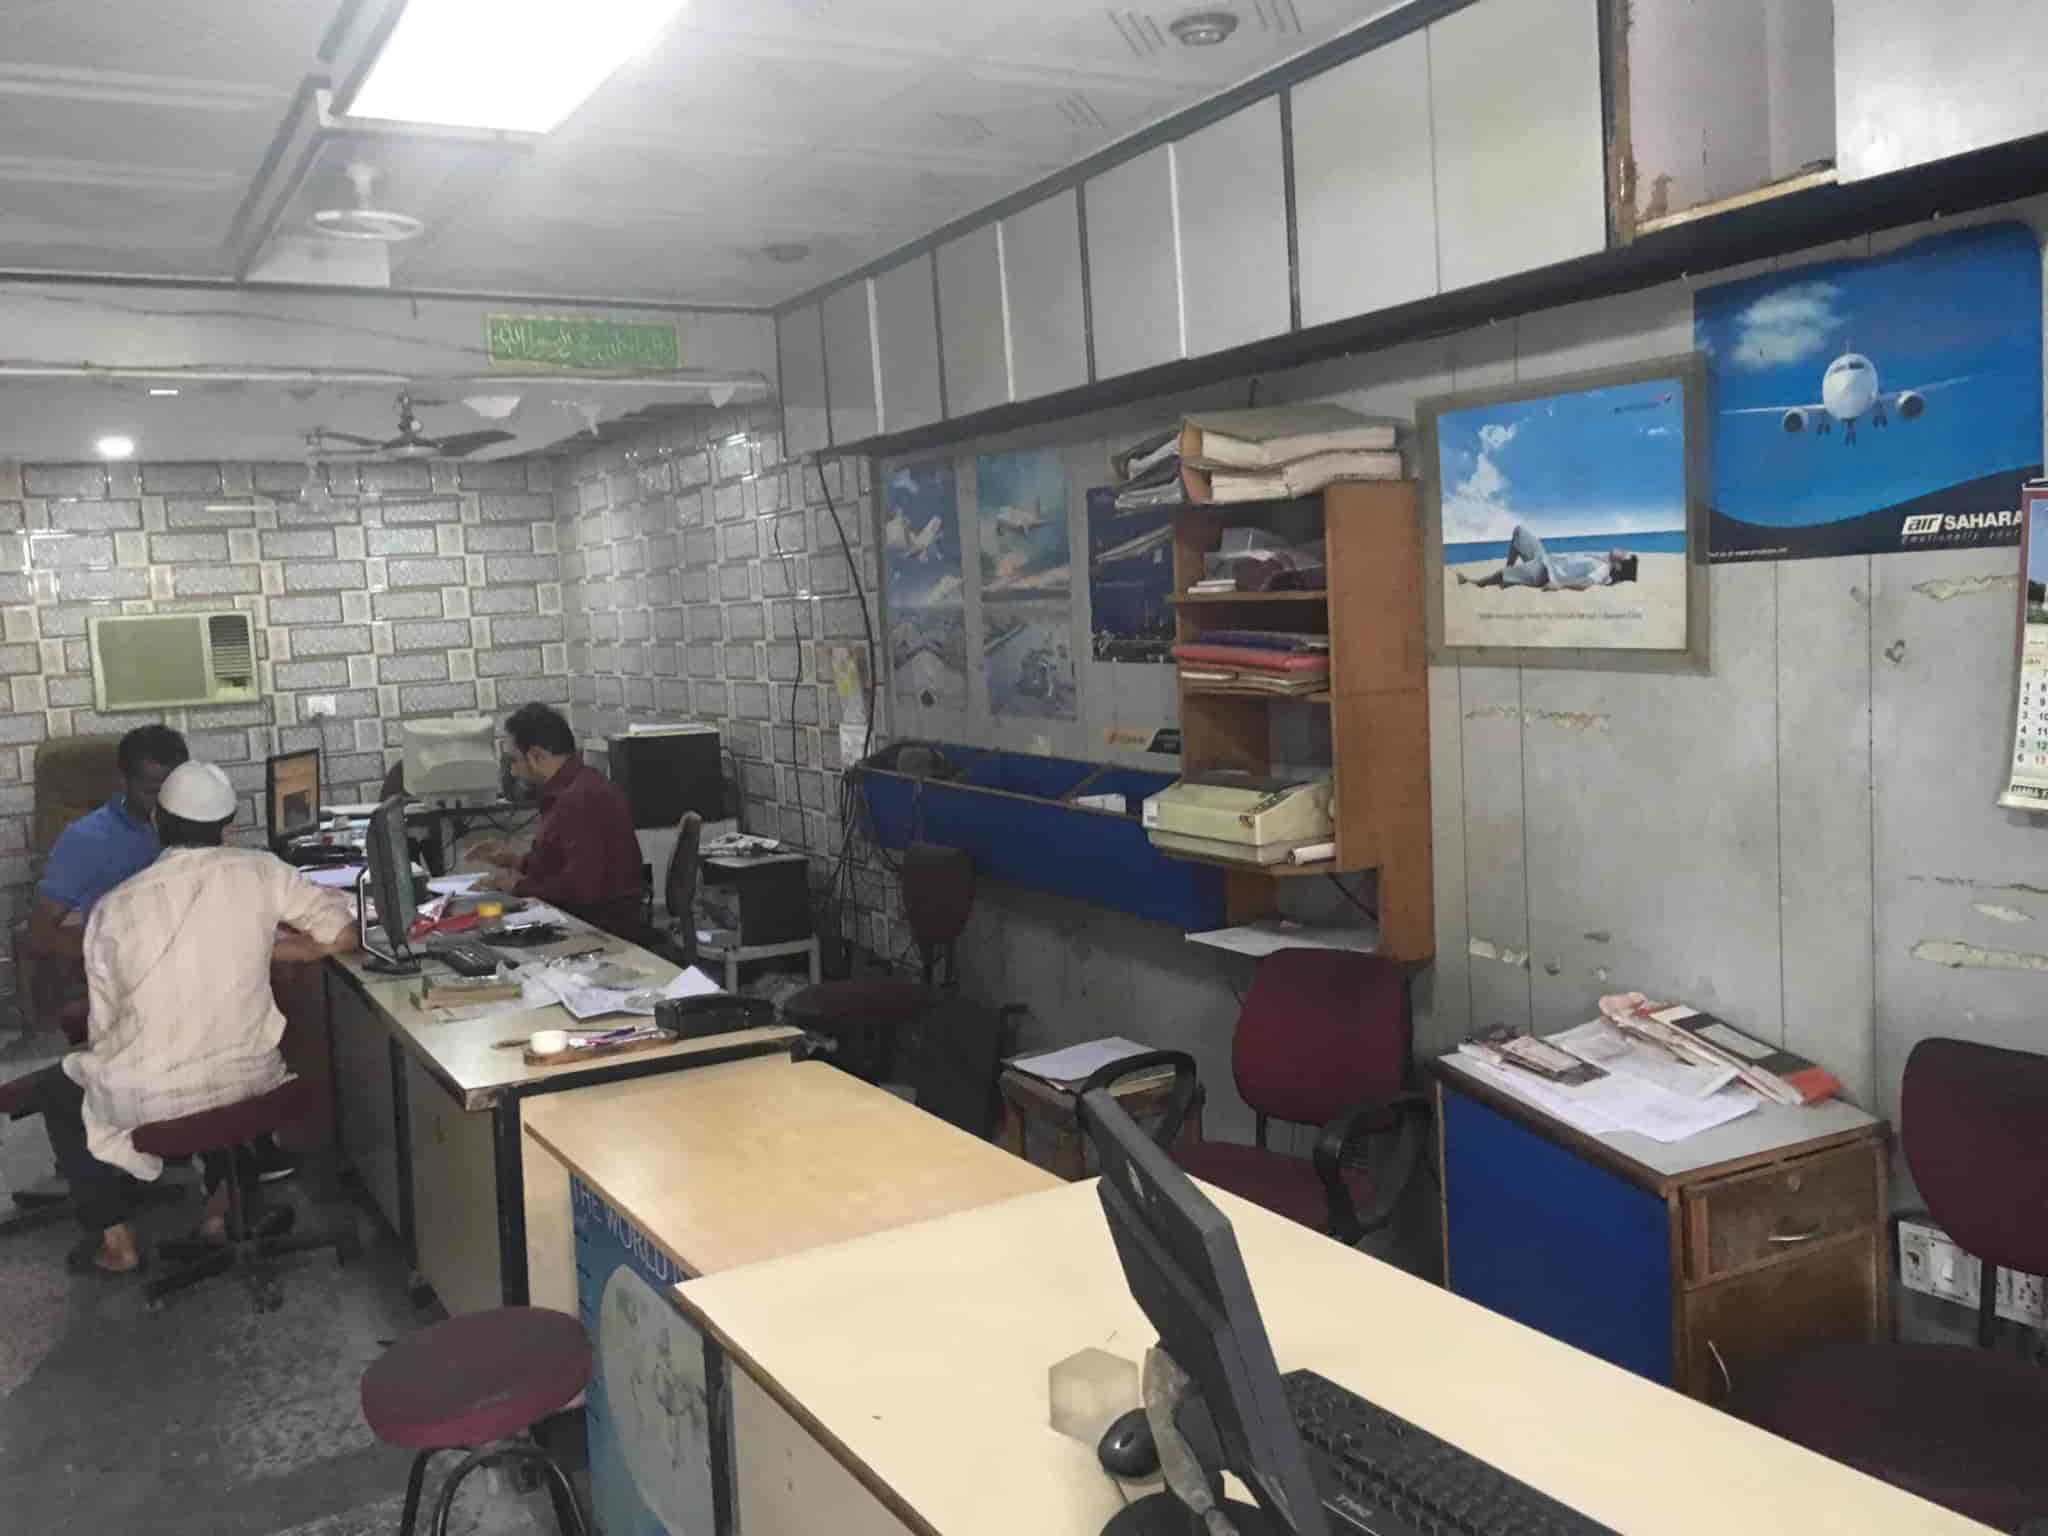 International Travel Agency, Station Road - Travel Agents in